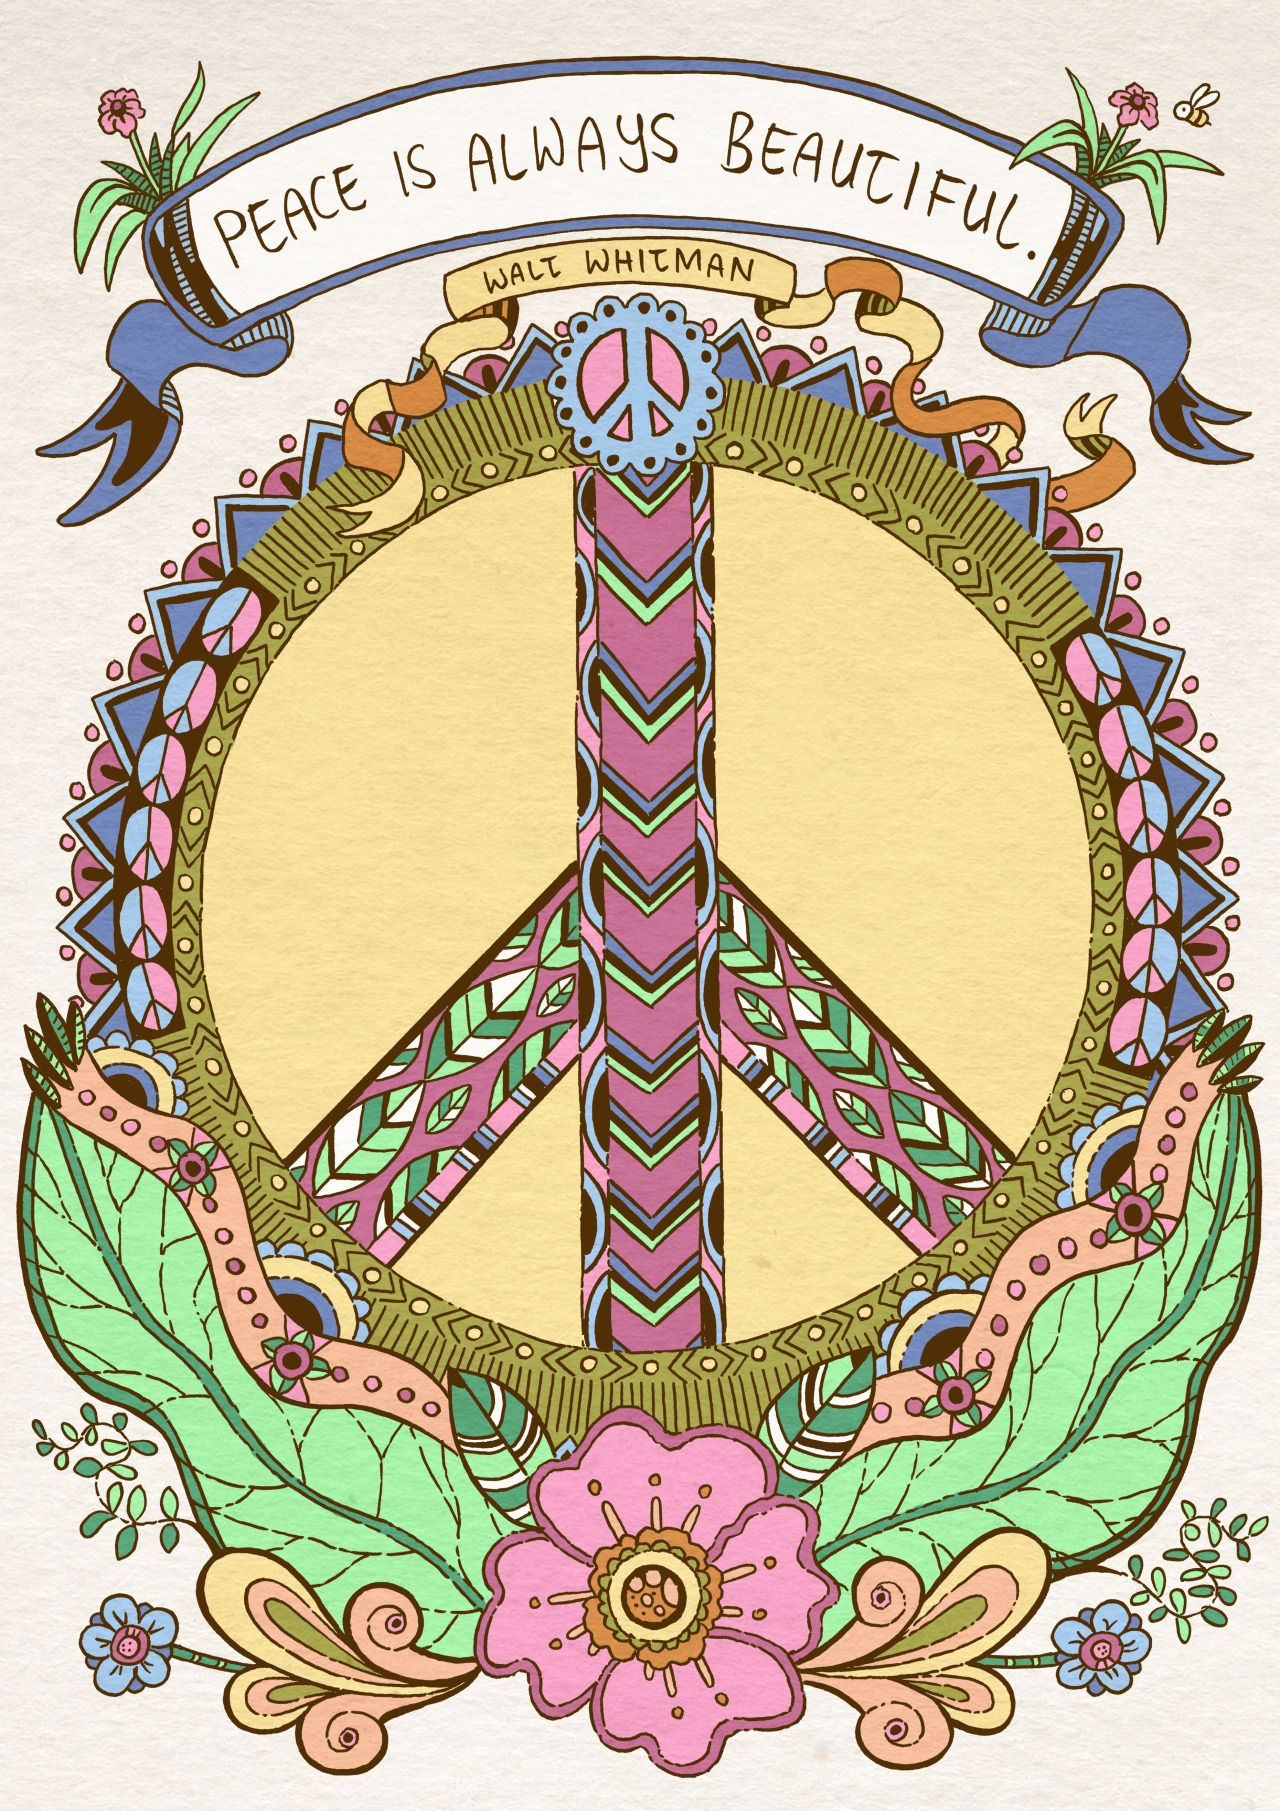 american hippie art peace sign art peace sign american hippie art peace sign biocorpaavc